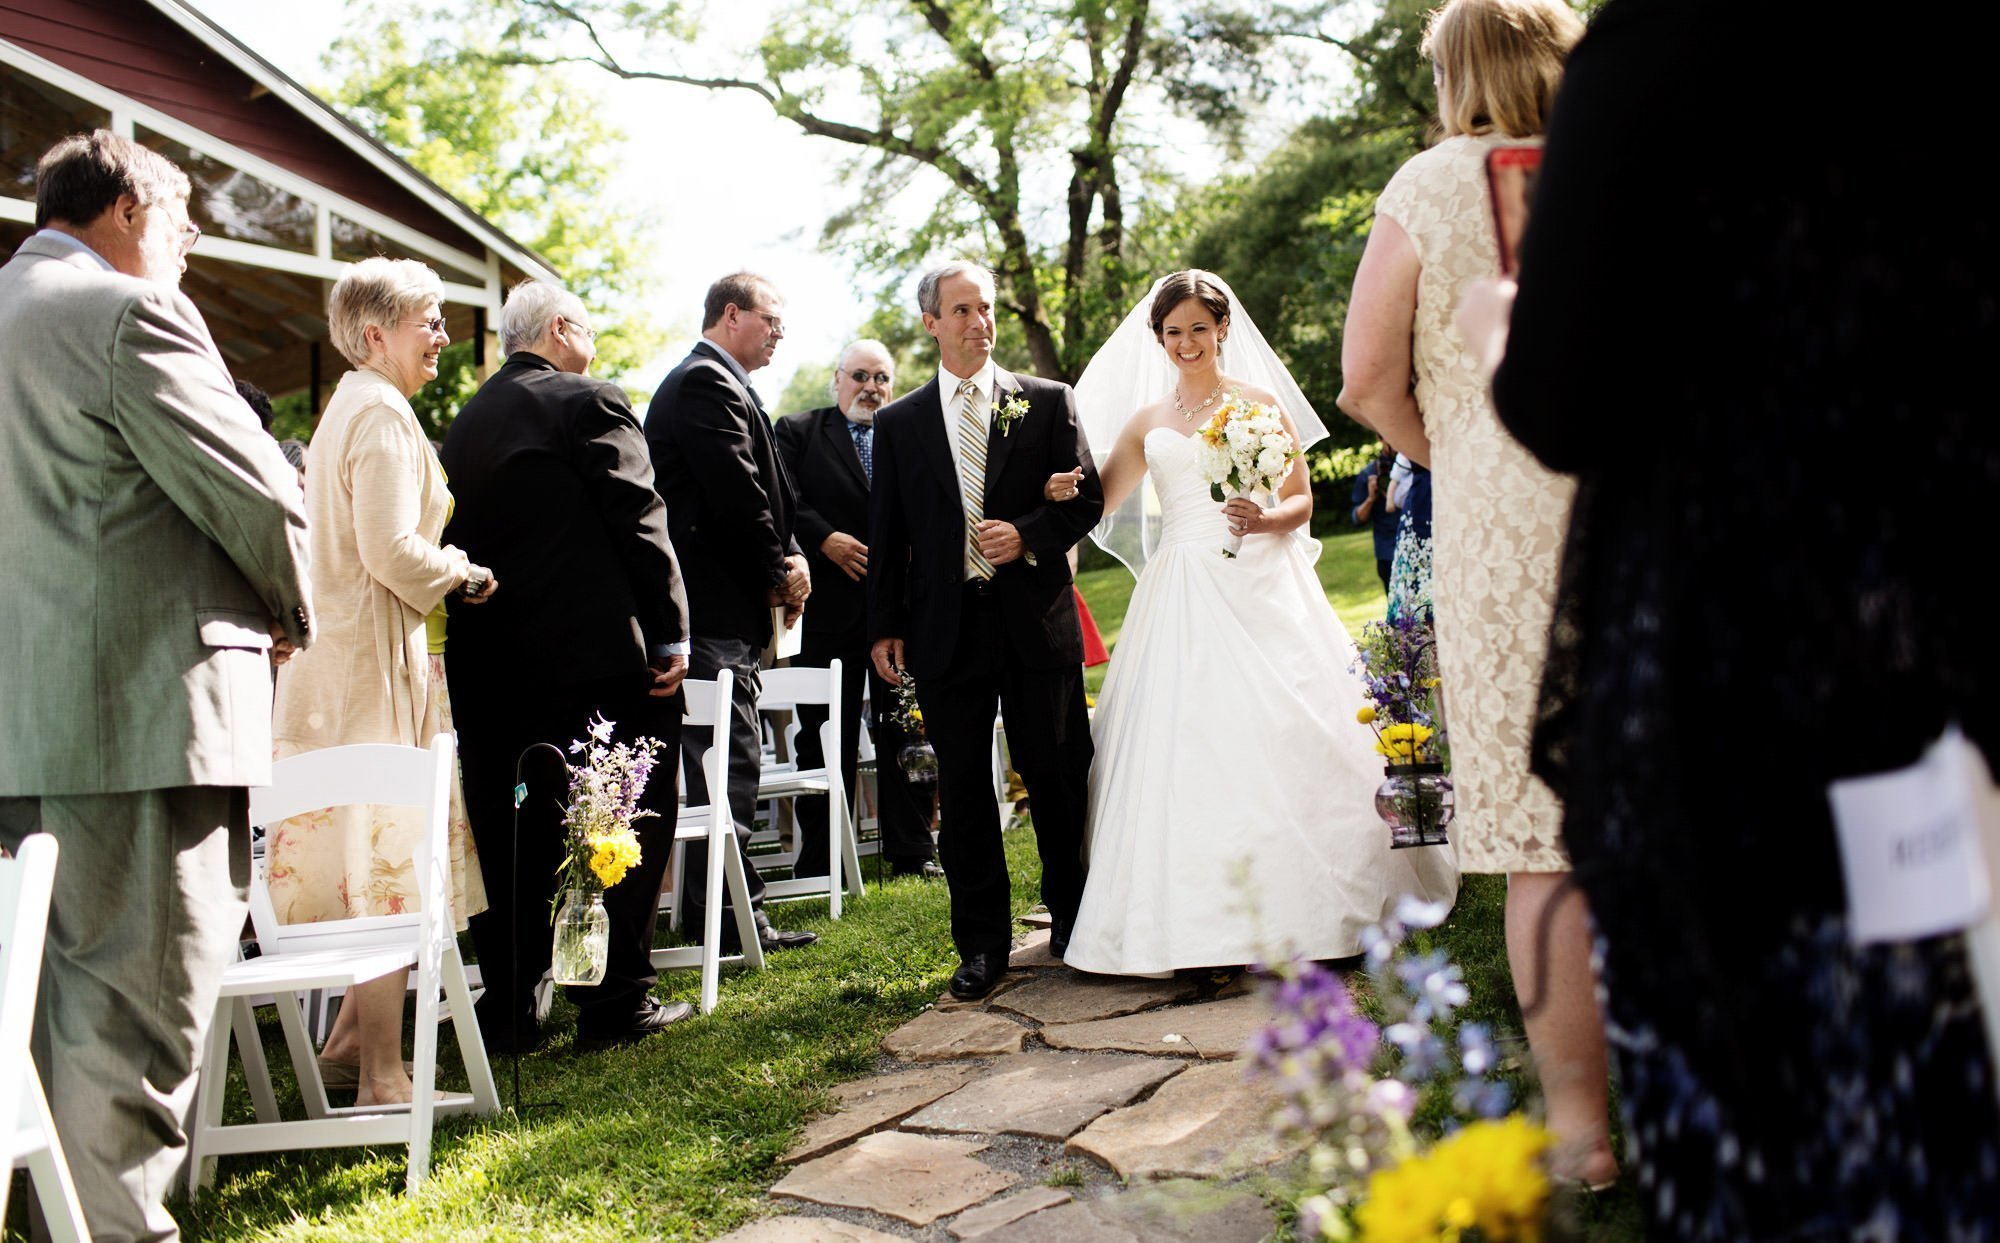 The bride is escorted down the aisle during her wedding at Chanteclaire Farm.